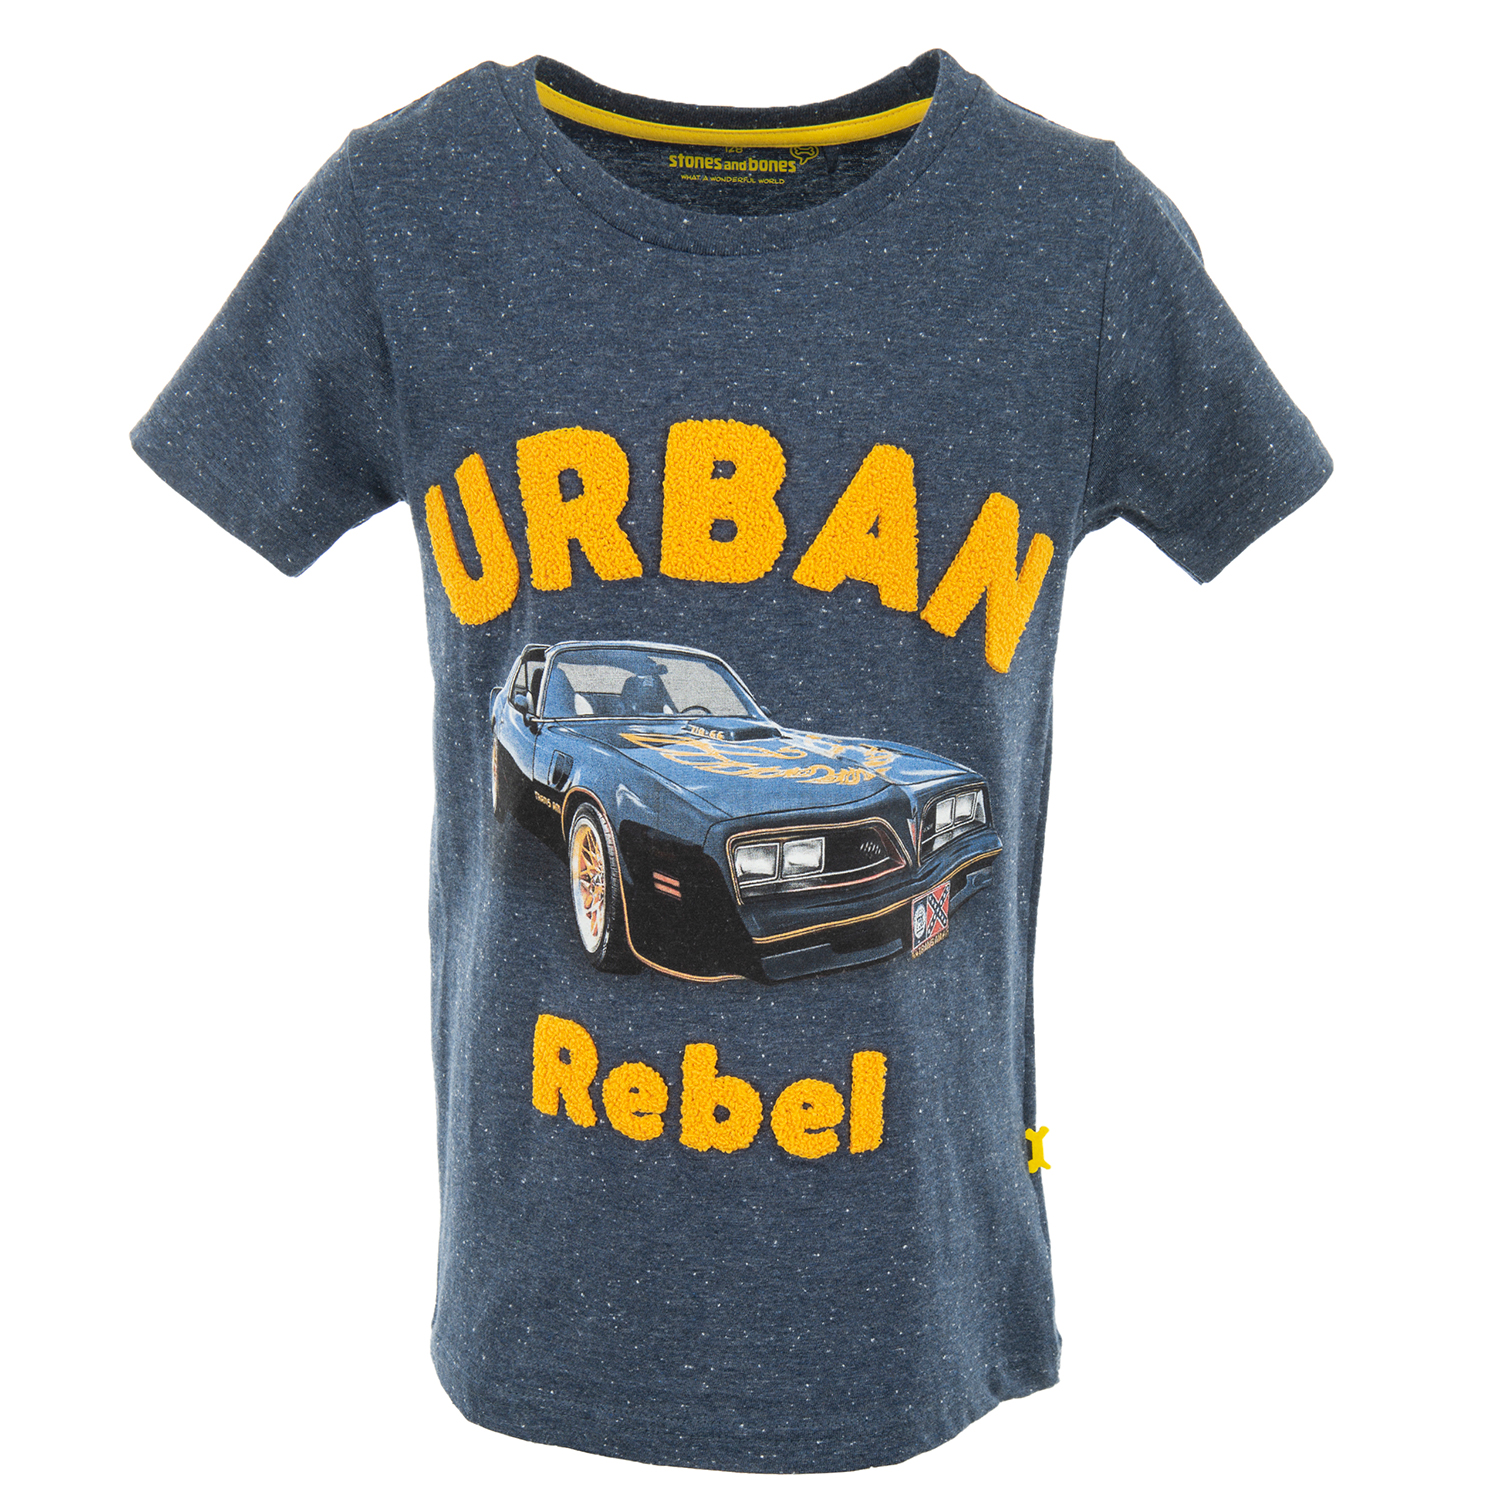 Russell - URBAN REBEL navy sp.